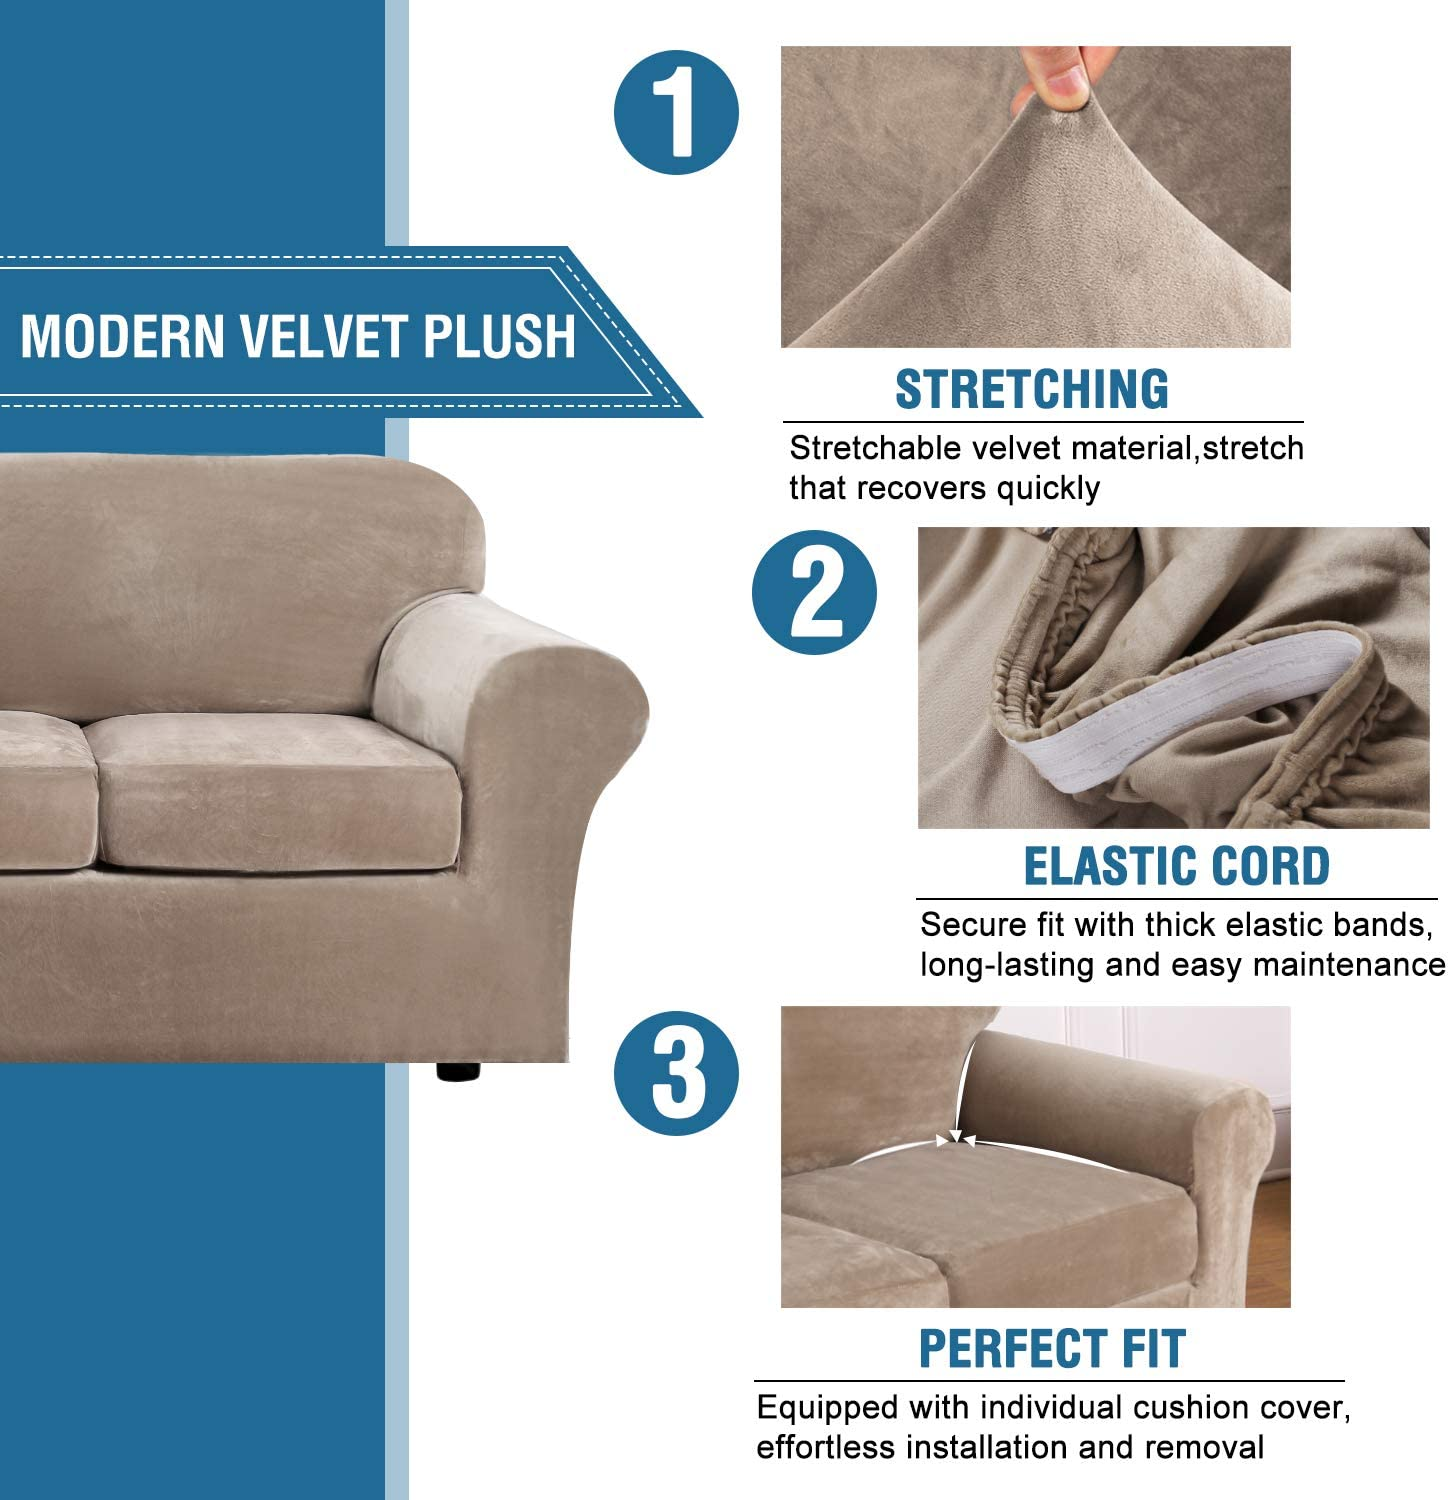 Real Velvet Plush 3 Piece Stretch Sofa Cover Velvet-Sofa Slipcover Loveseat Cover Furniture Protector Couch Soft Loveseat Slipcover for 2 Cushion Couch with Elastic Bottom Loveseat,Deep Teal